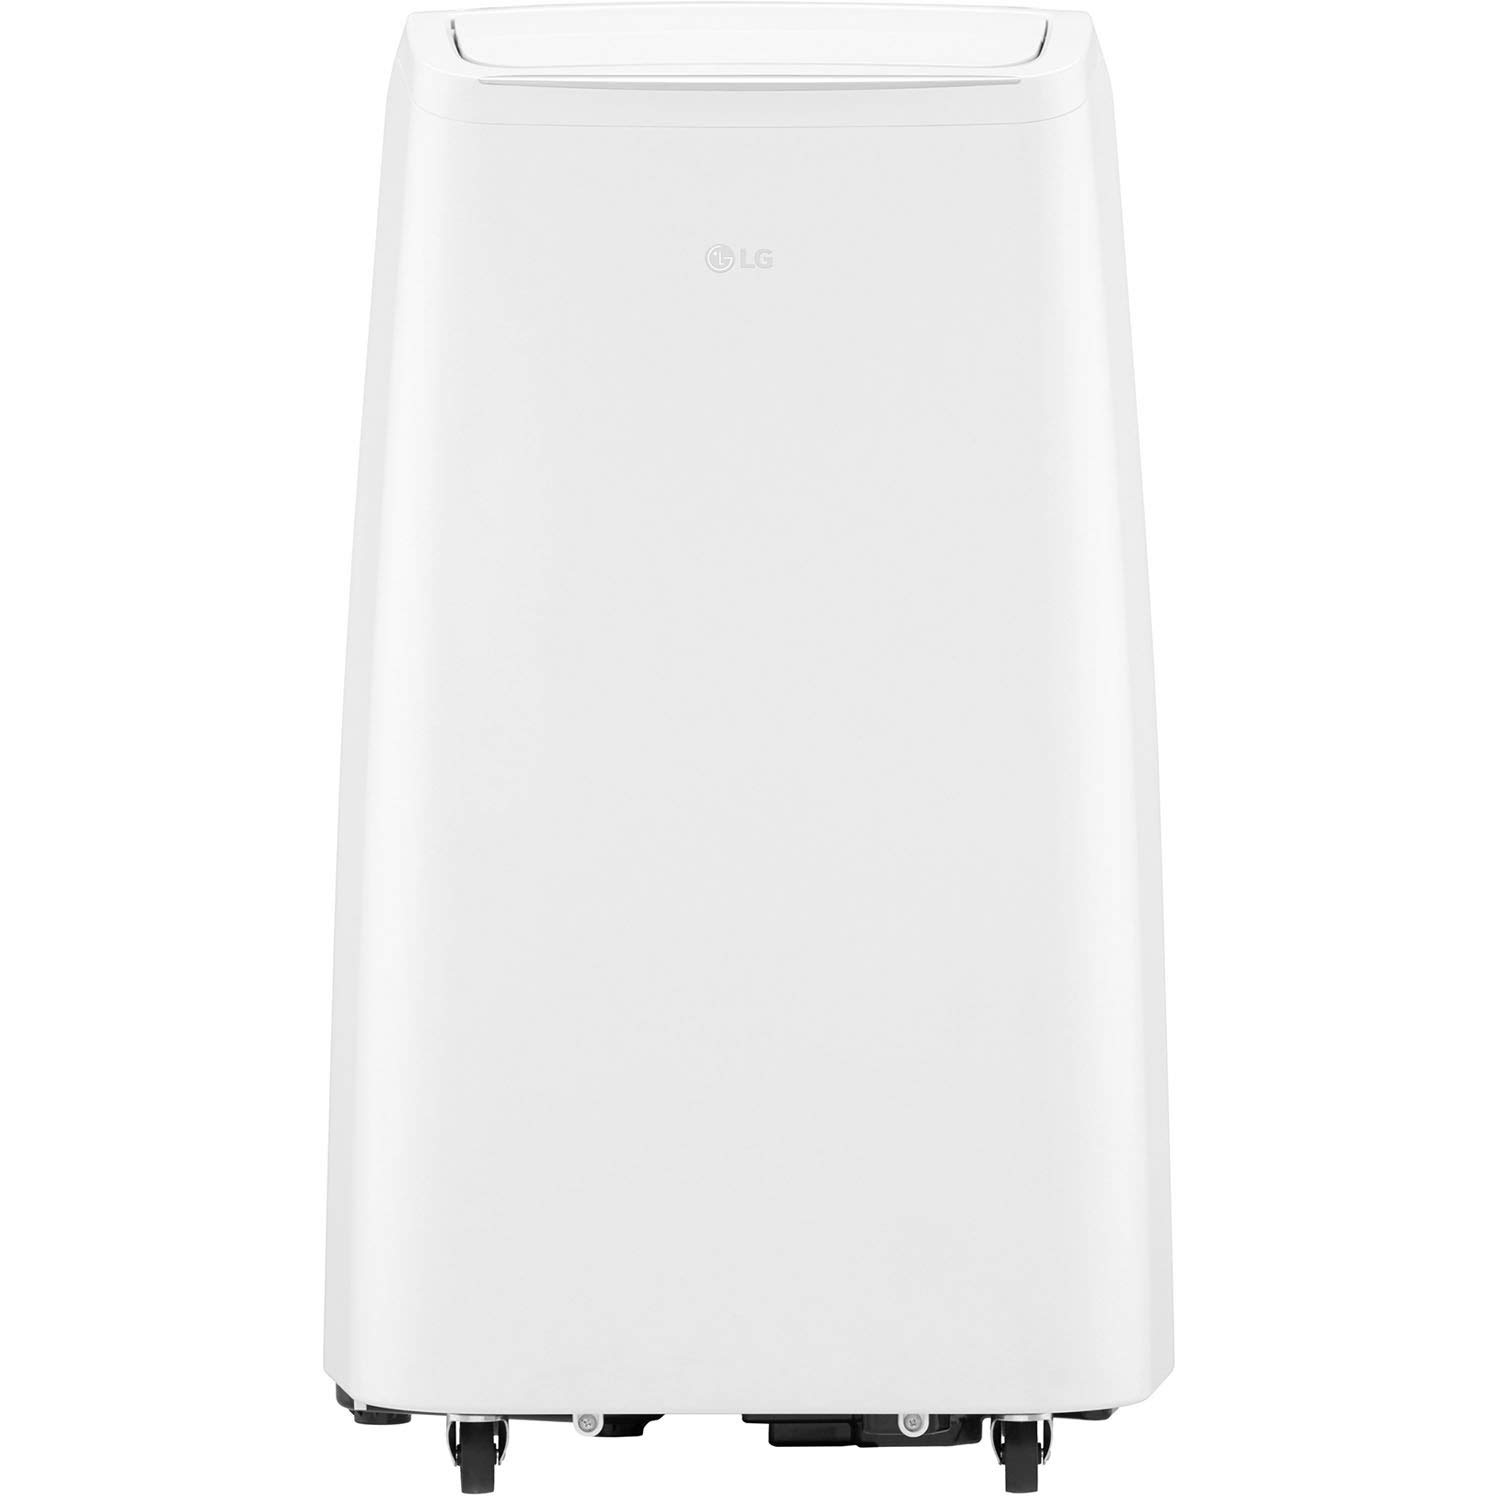 LG 115V Remote Control Portable Air Conditioner, Rooms up to 300-Sq. Ft, White (Certified Refurbished)